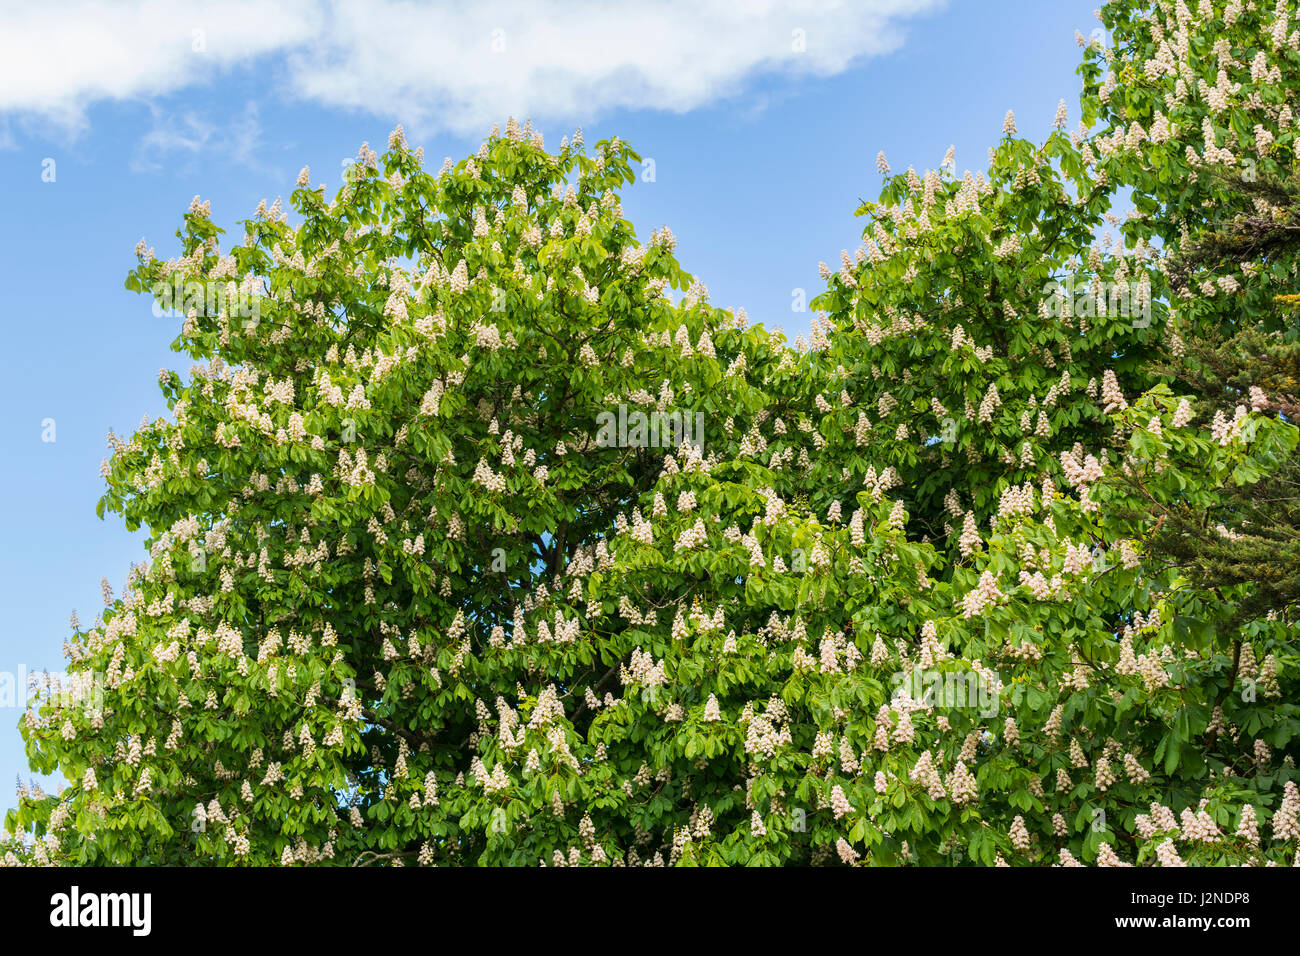 Top of a Horse Chestnut tree (Aesculus hippocastanum), AKA a Conker tree, .in Spring in the UK. - Stock Image